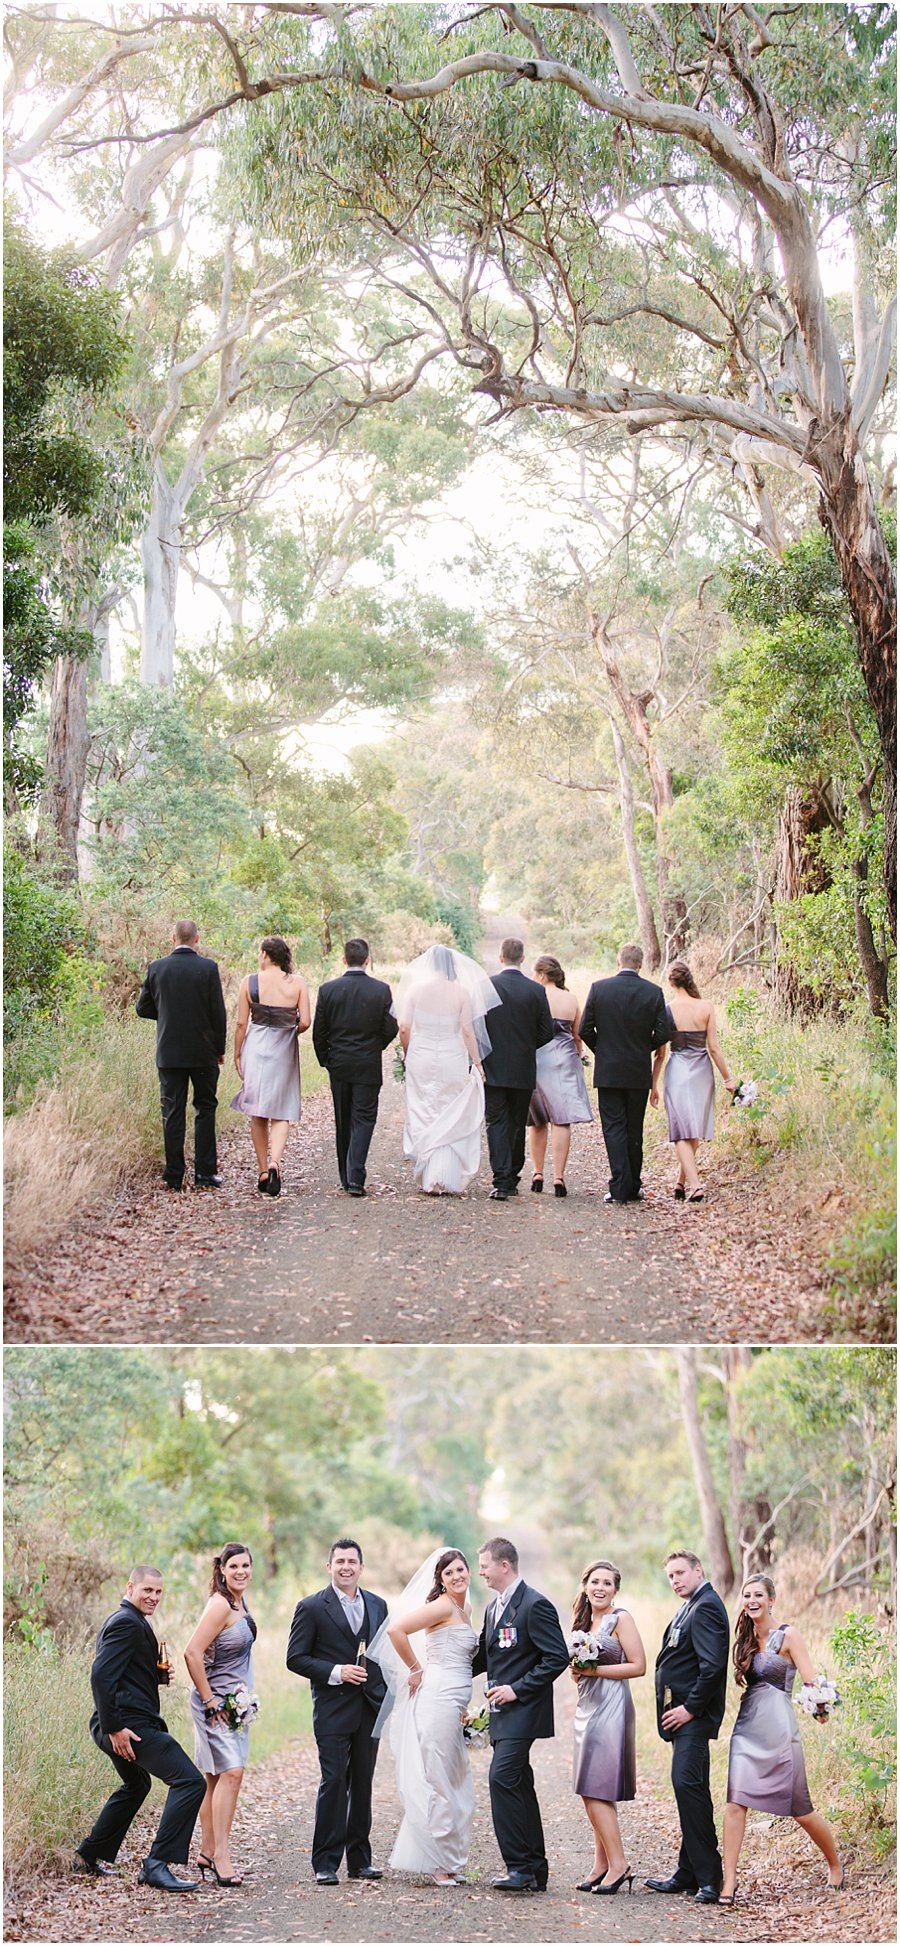 Christian_Chanelle_Harvey_Lancefield_Wedding_12